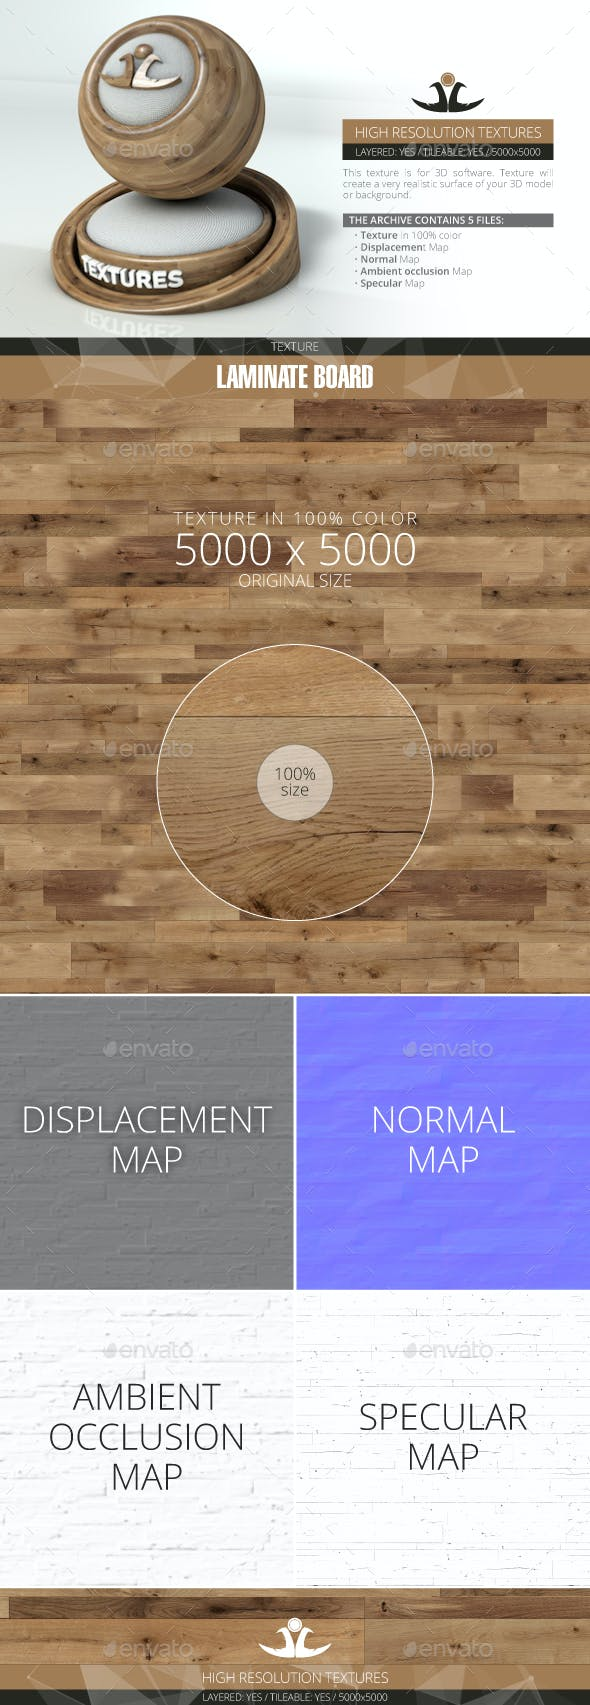 Laminate Board 34 - 3DOcean Item for Sale